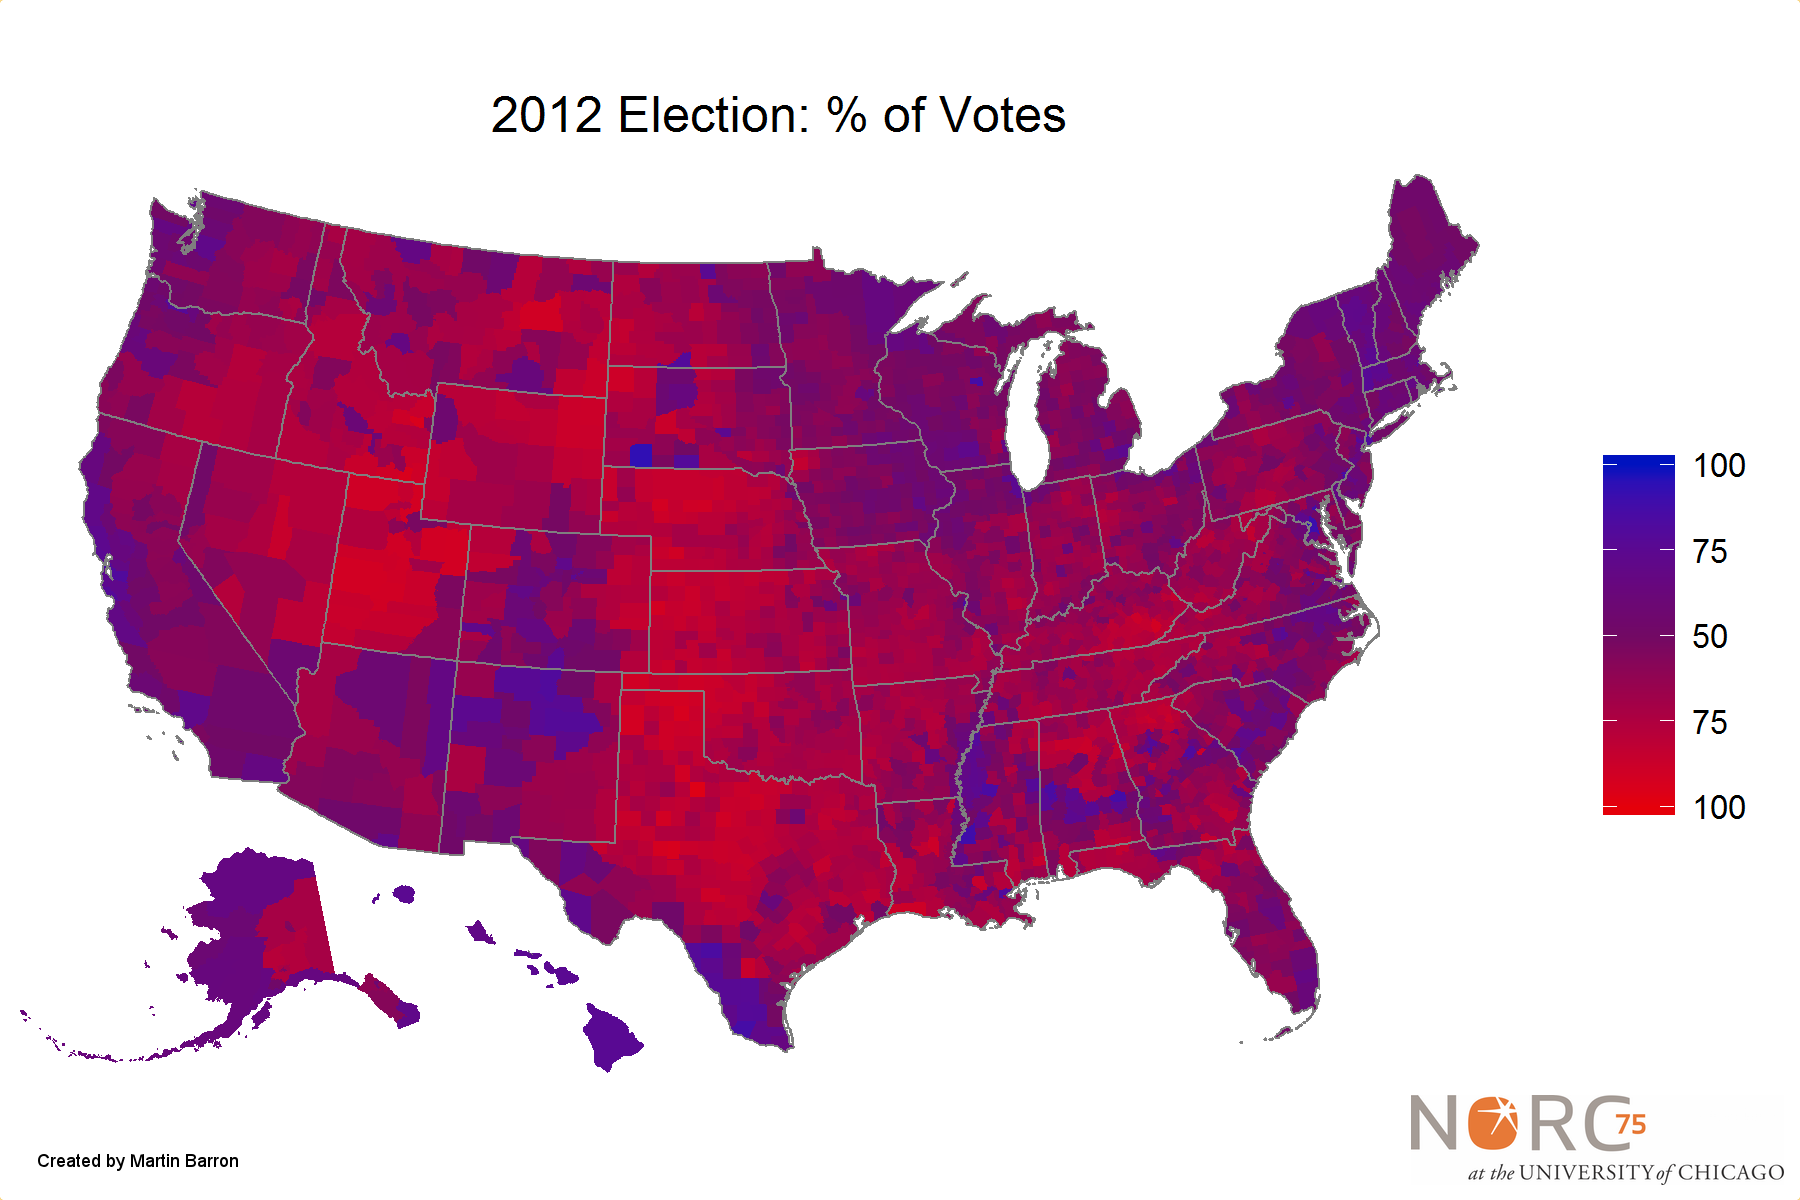 Sparks Post - Us election map by county purple